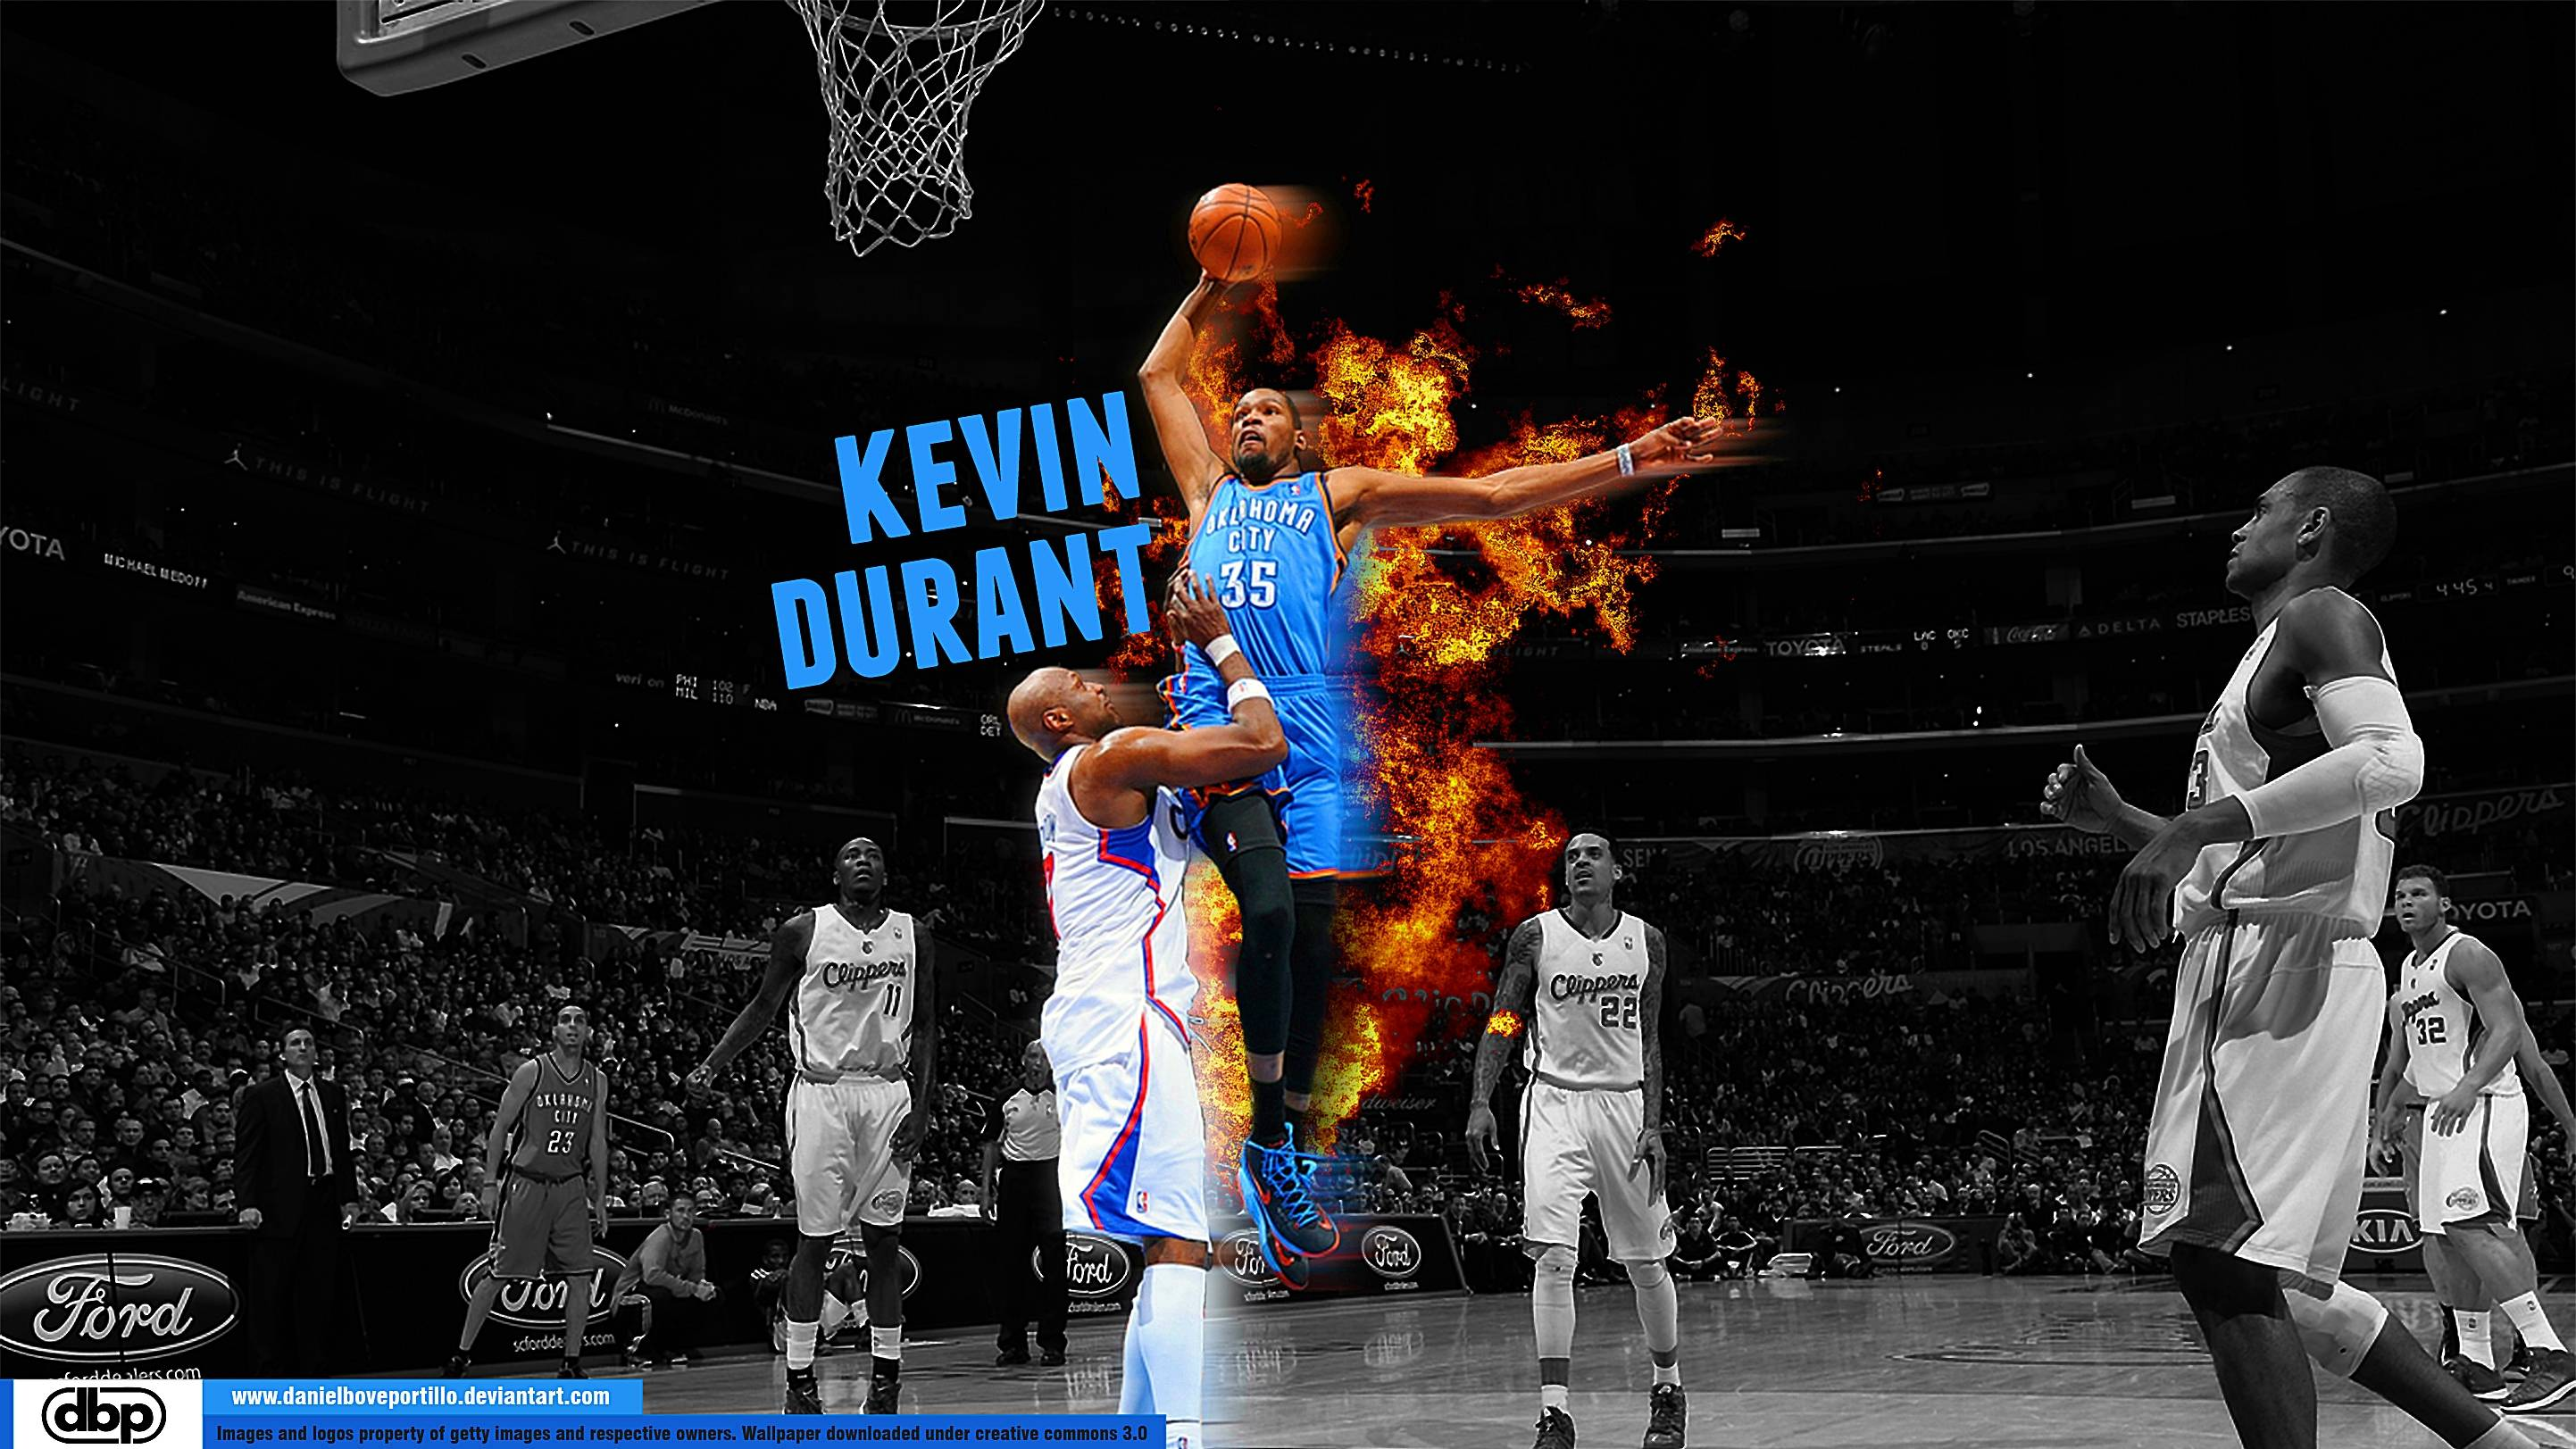 2885x1623 Kevin Durant Dunk Wallpapers 2016